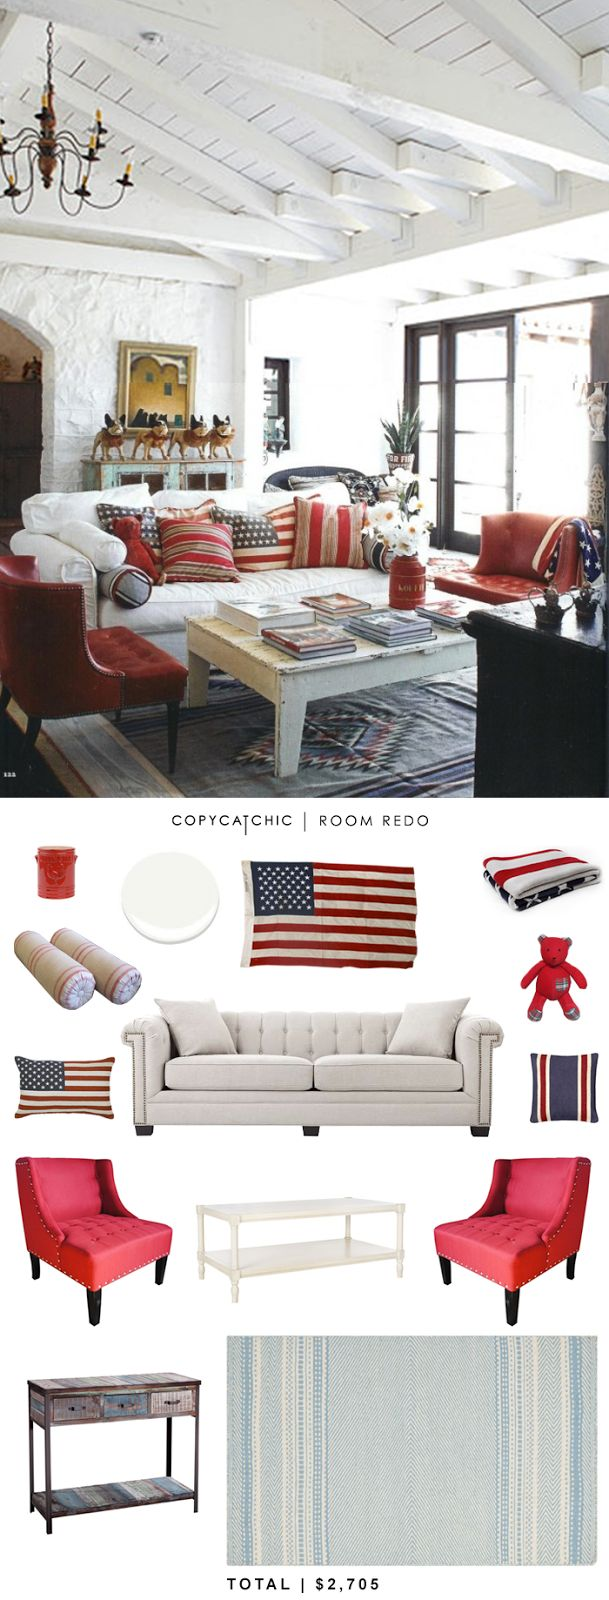 Copy Cat Chic Room Redo  - Red,  White and Blue